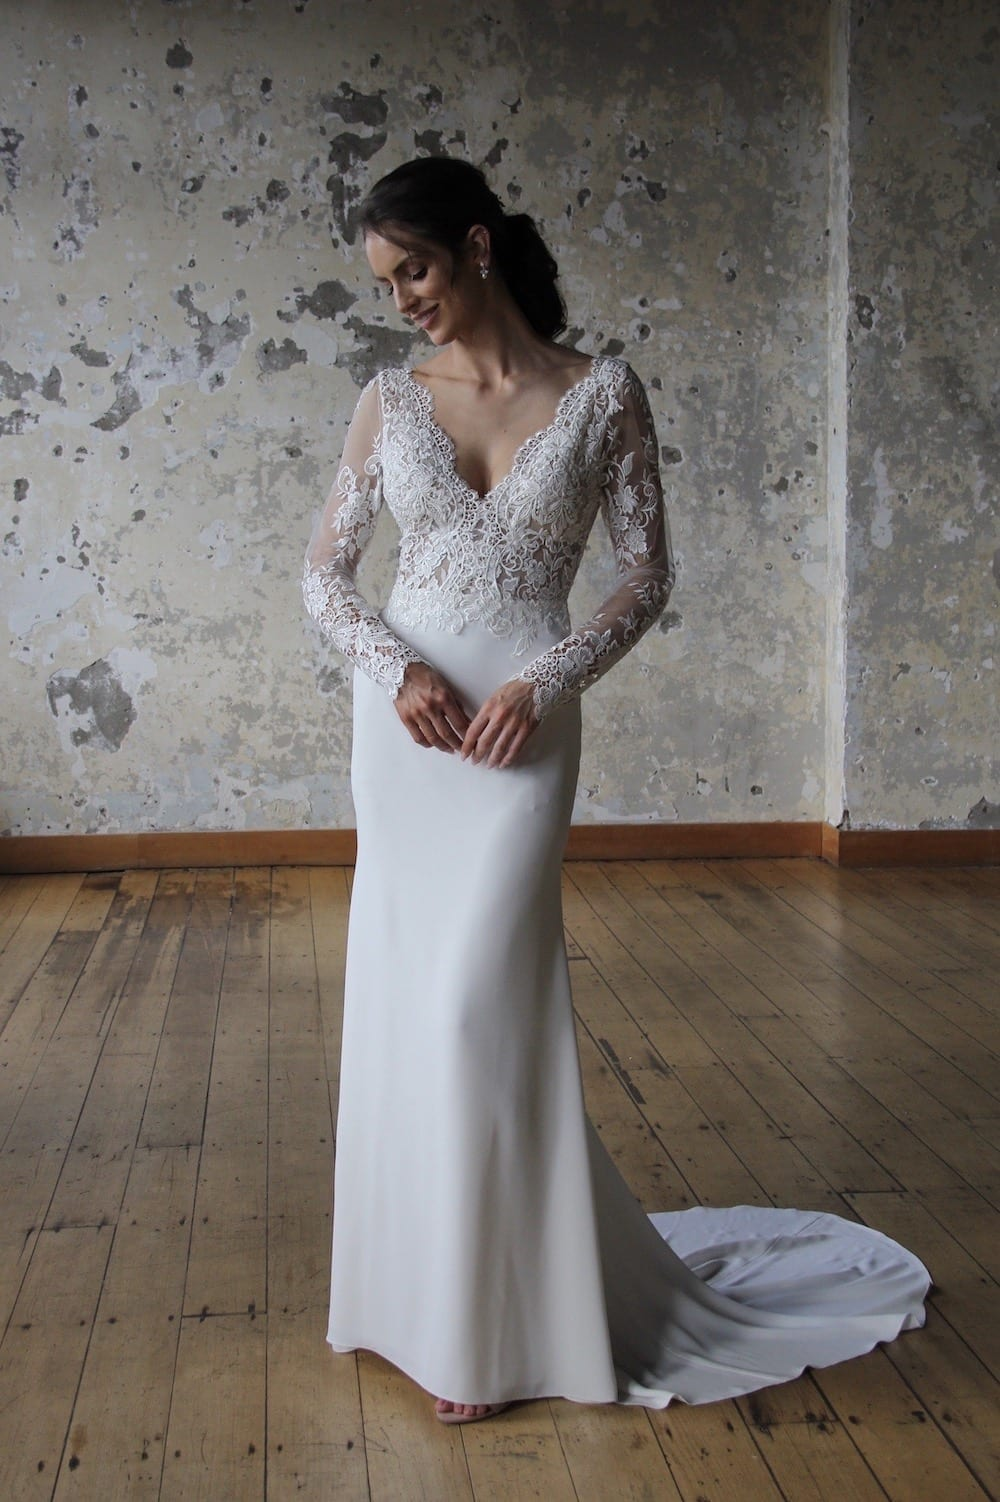 Female model wearing Vinka Design Modern Muse Wedding Dress. In chic warehouse the front detail of a gown with v-neckline, intricate bodice, long lace sleeves, and Bridal crepe skirt.